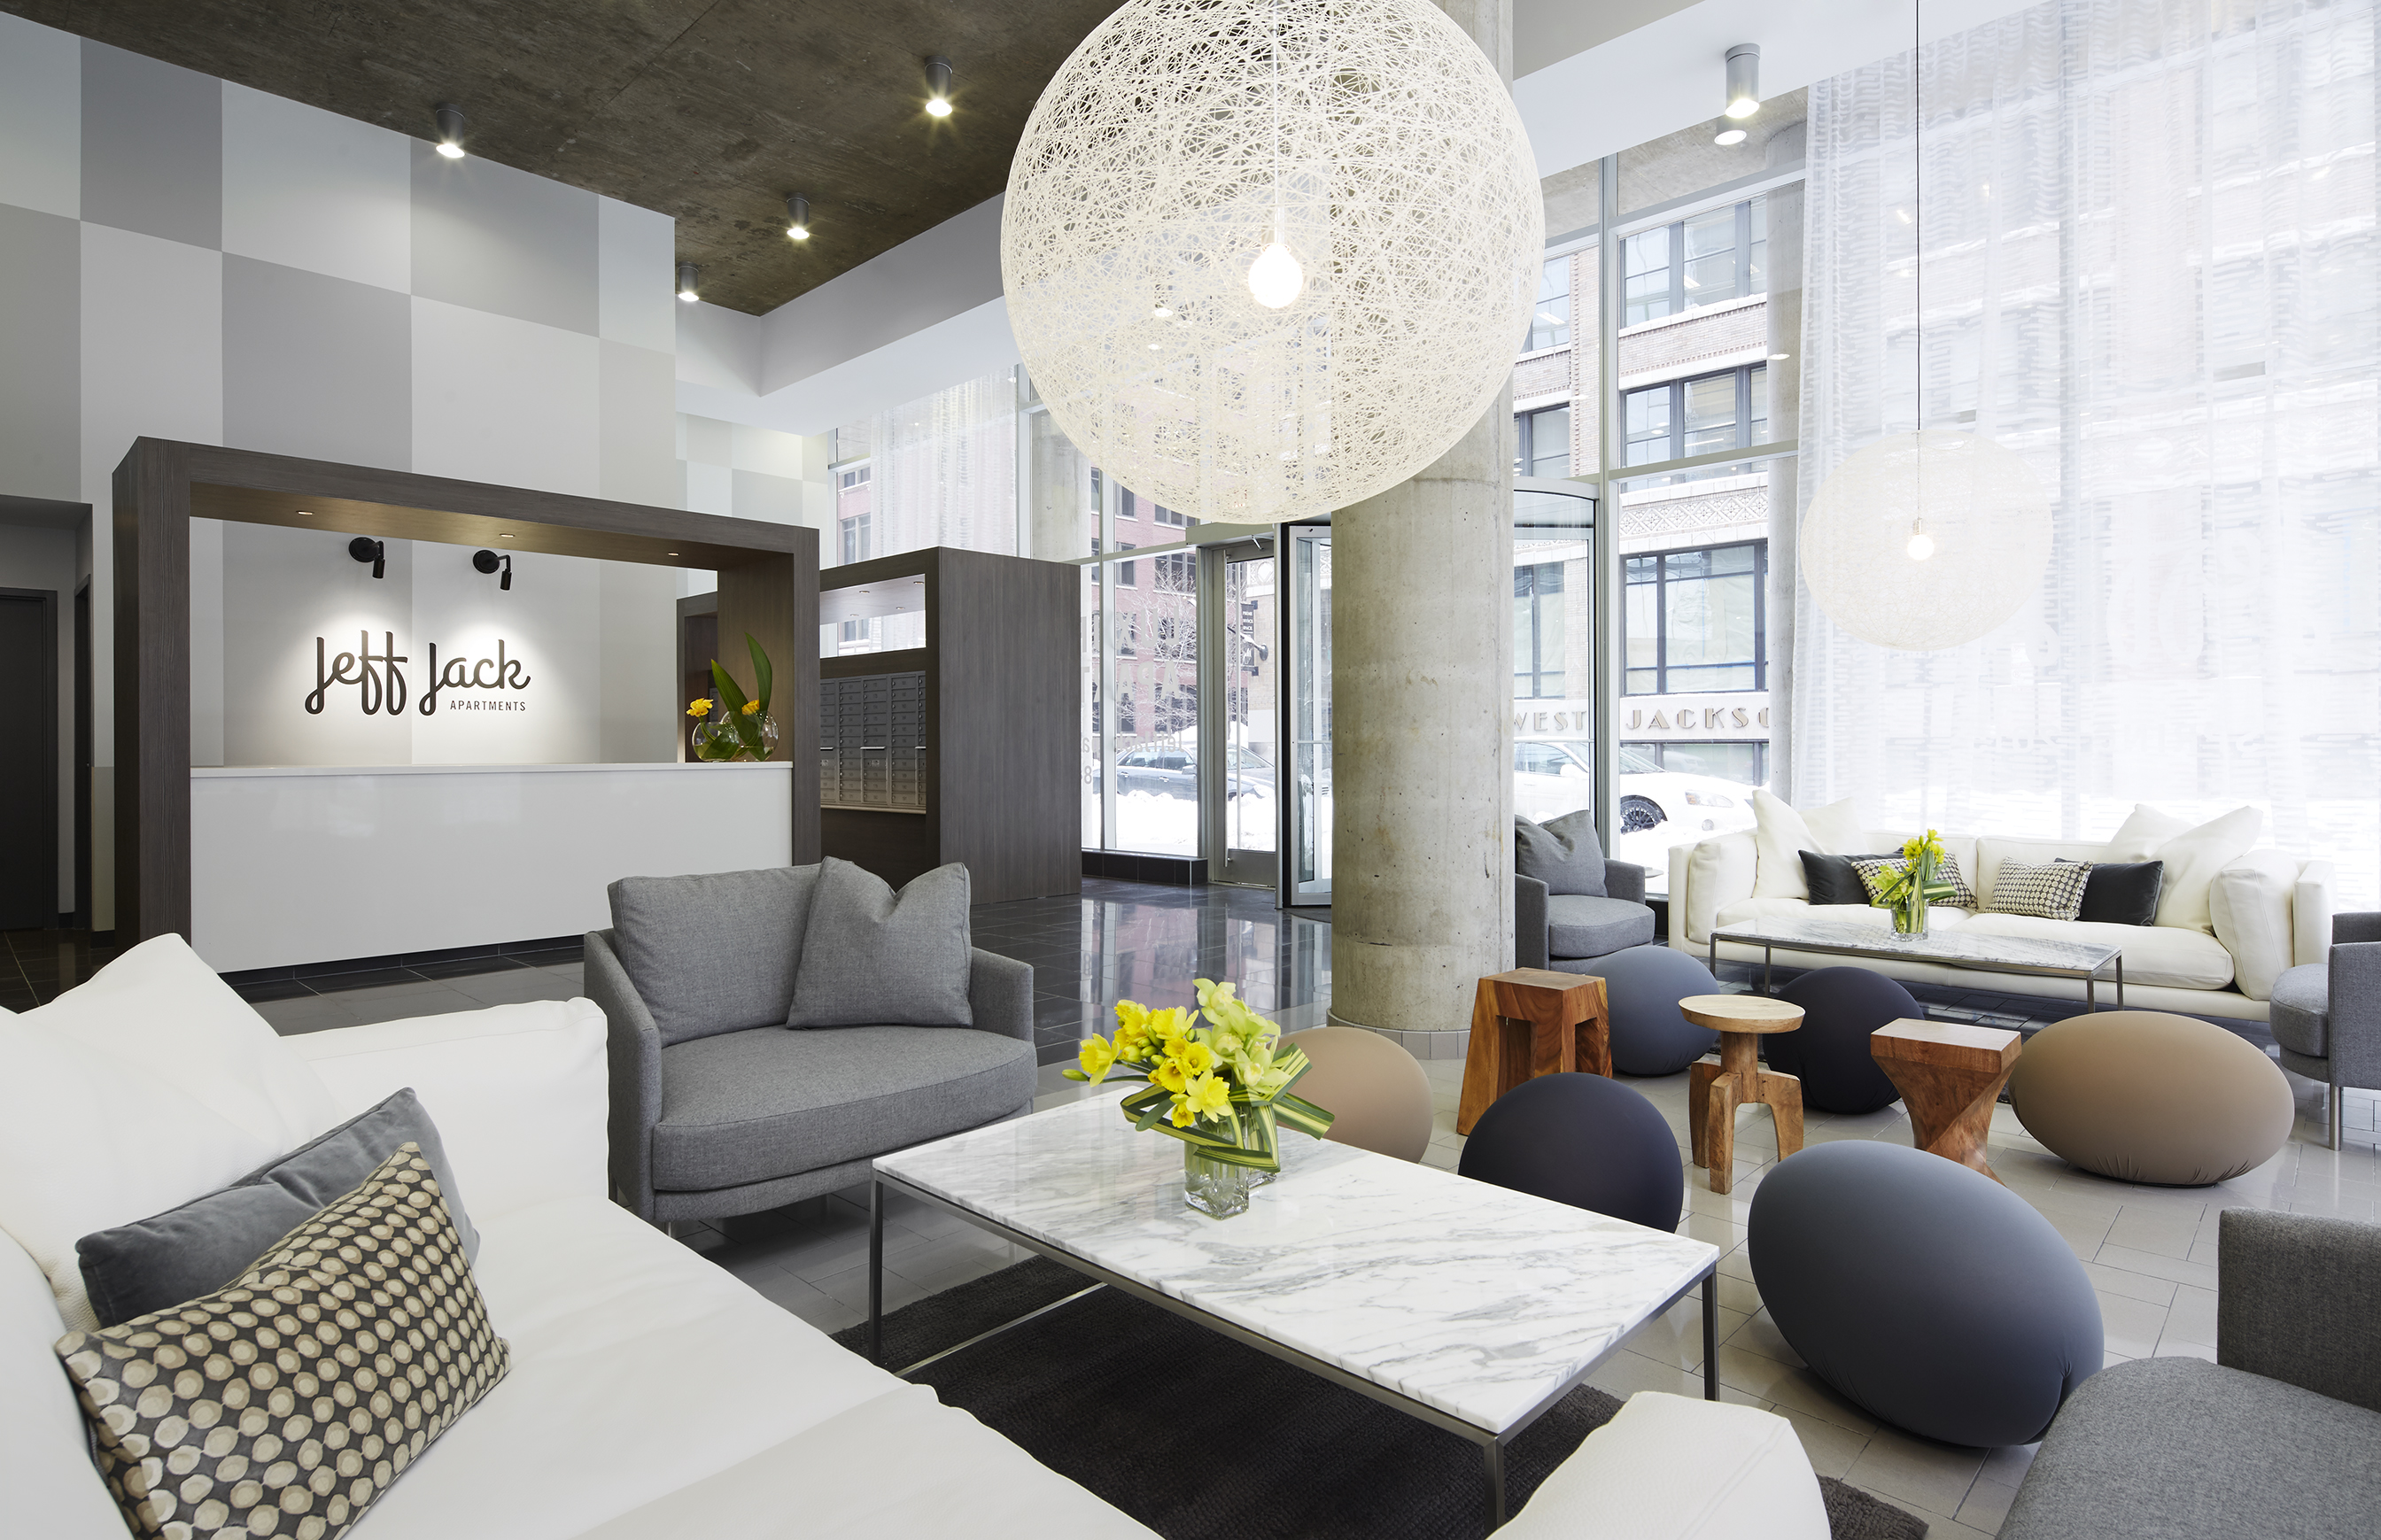 Meet JeffJack Apartments The Chicagolite